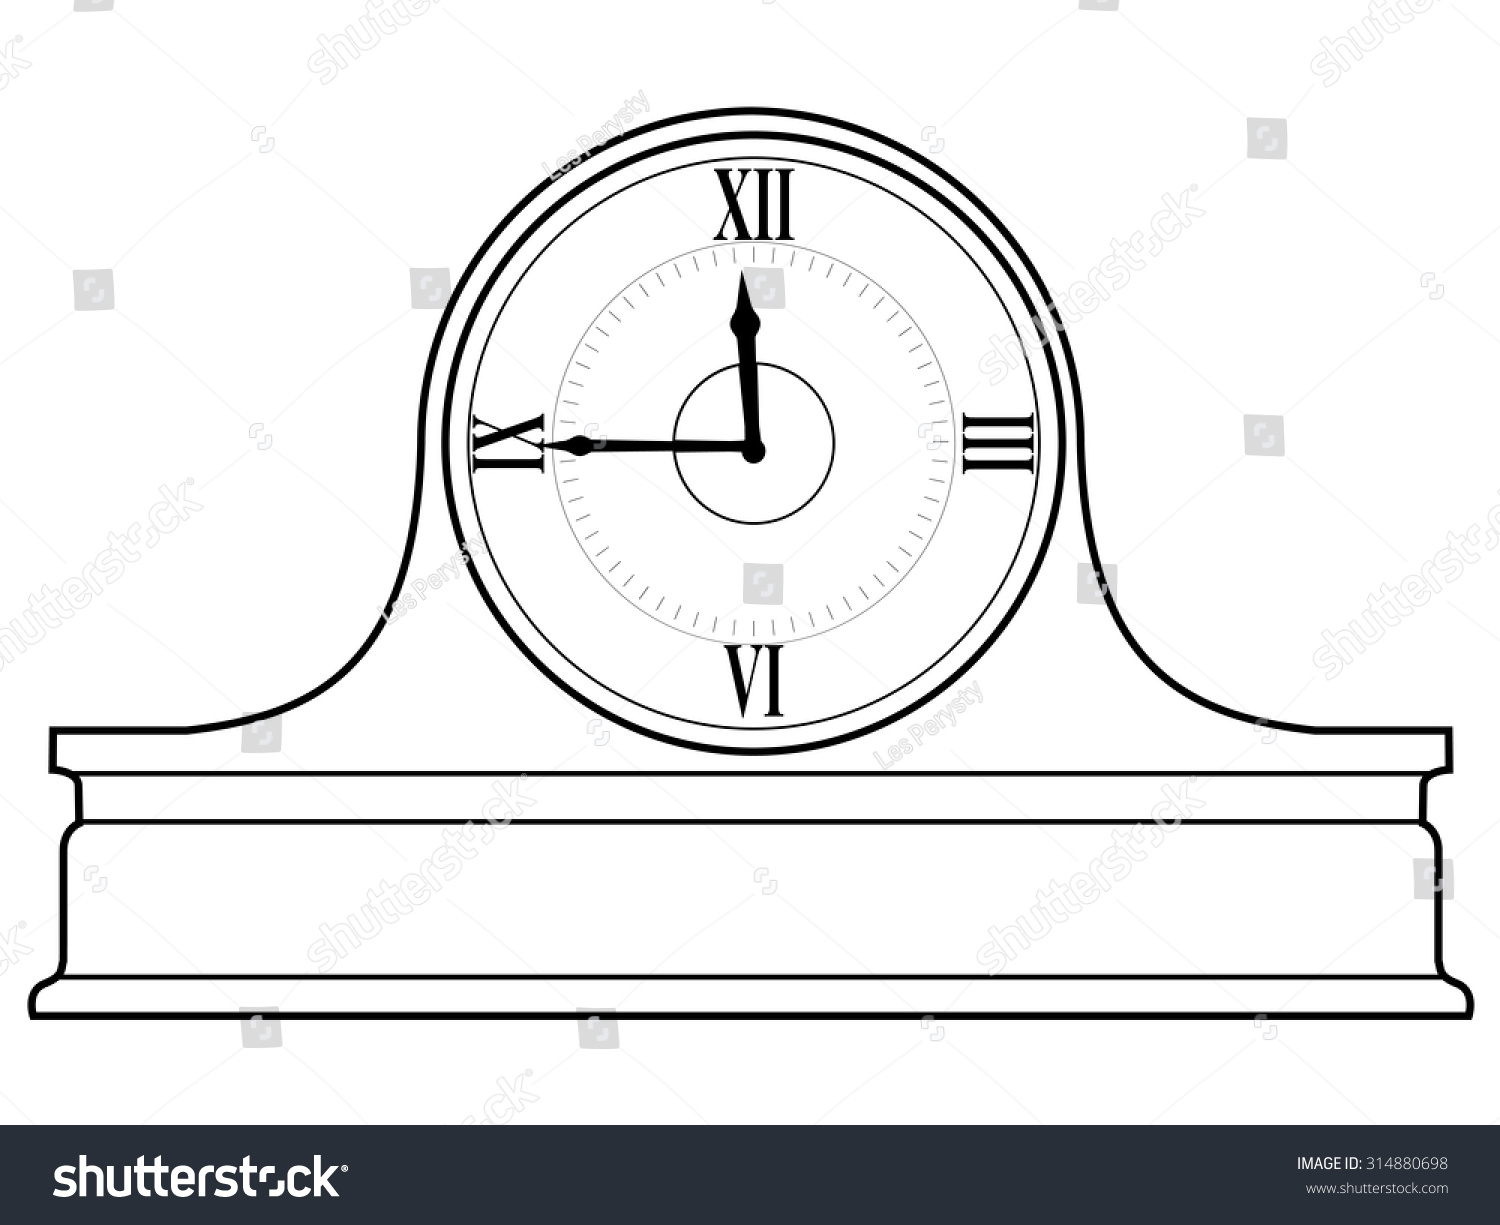 how to set the correct time on a grandfather clock